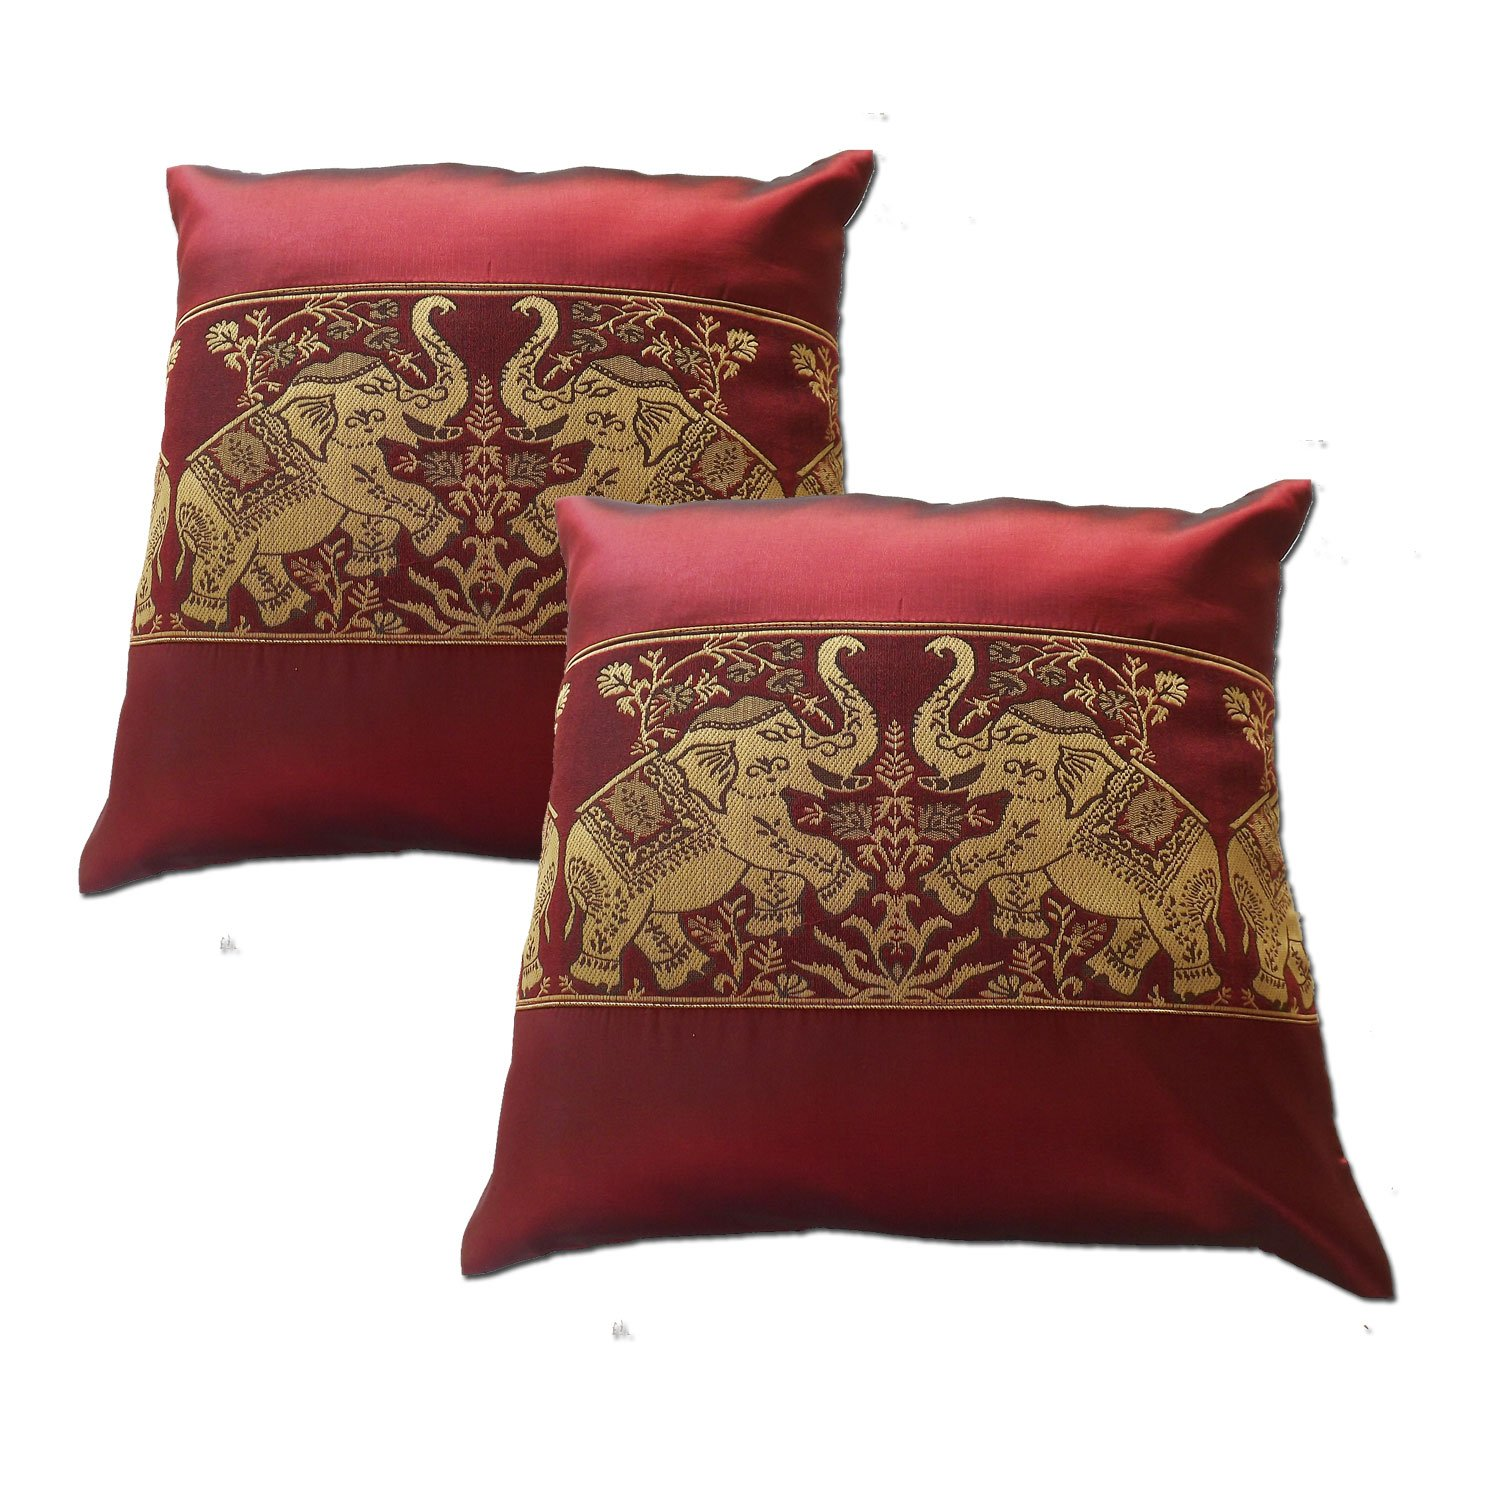 A pair of Beautiful Thai Silk Pillow Covers for decorate Living Room, Bed Room, Sofa, Car / Size 16 X 16 Inches Code 4005